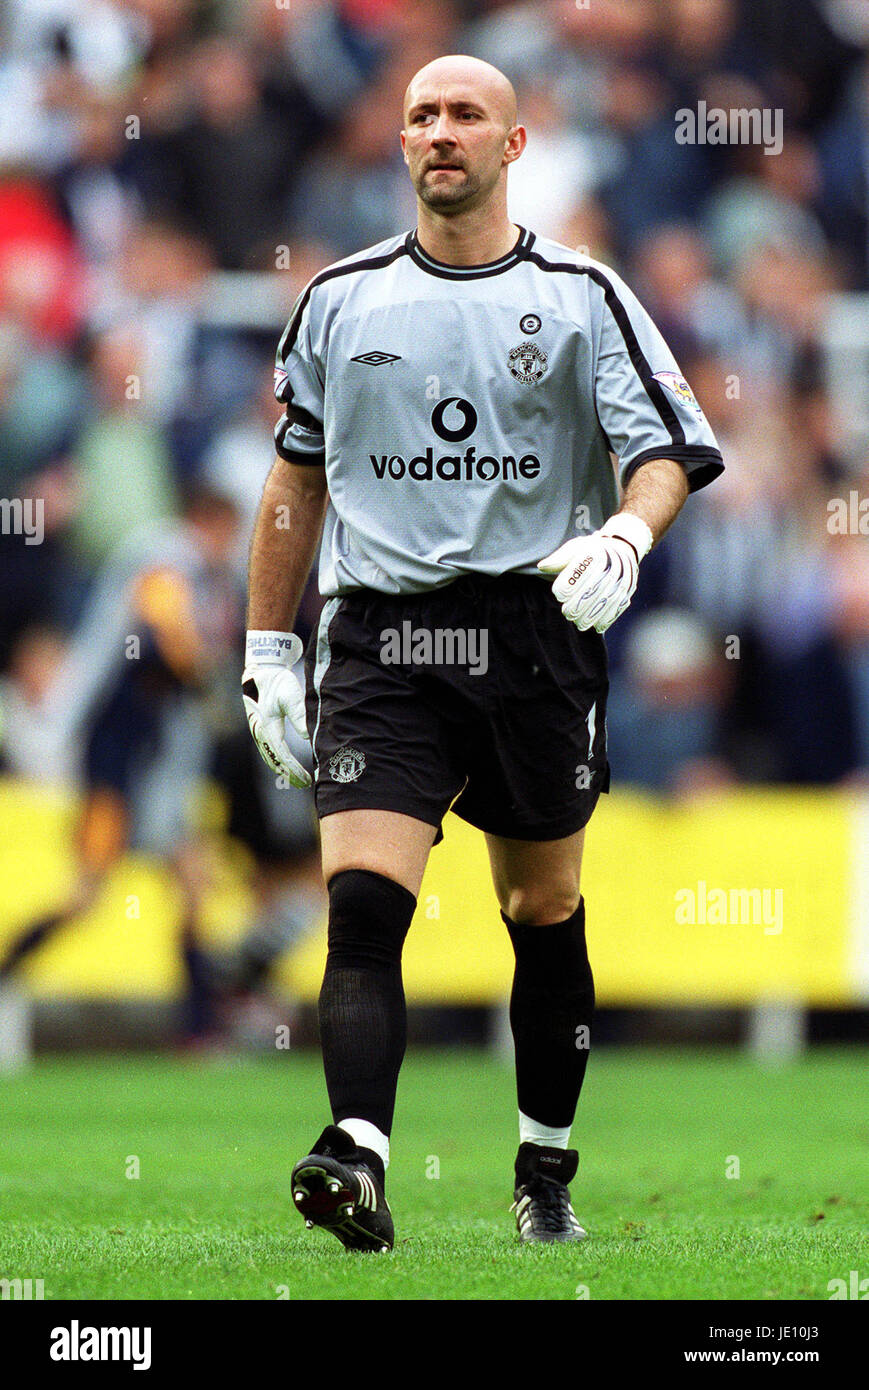 c23b41fa4f4 FABIEN BARTHEZ MANCHESTER UNITED FC ST JAMES PARK NEWCASTLE ANGLETERRE 15  Septembre 2001 Photo Stock